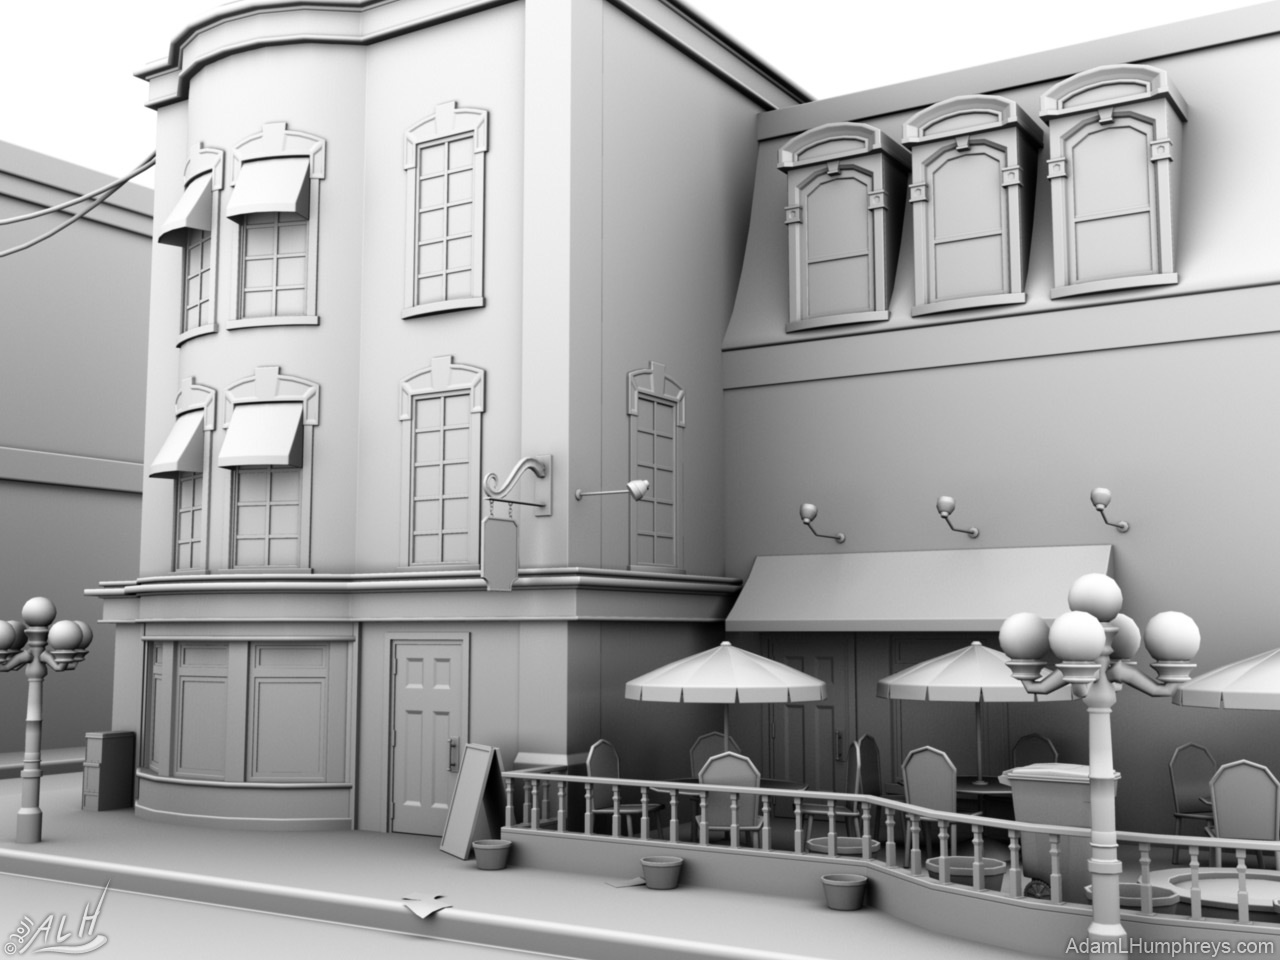 Adam L Humphreys Fiinal Project Ambient Occlusion